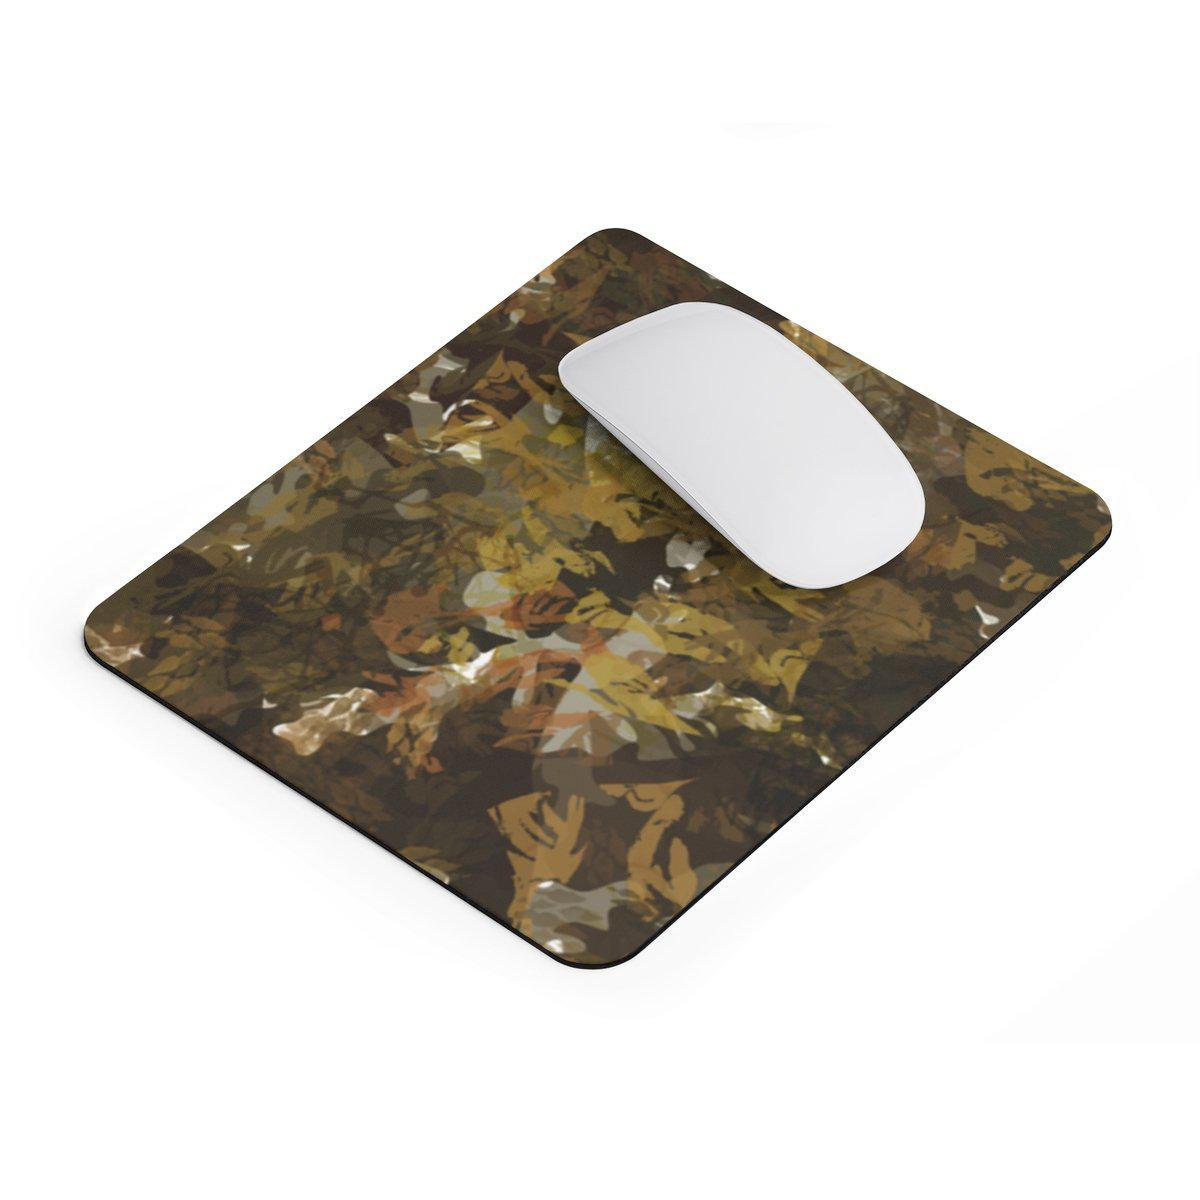 Camouflage rectangular Mouse pad-Home Decor-Maison d'Elite-Rectangle-Très Elite